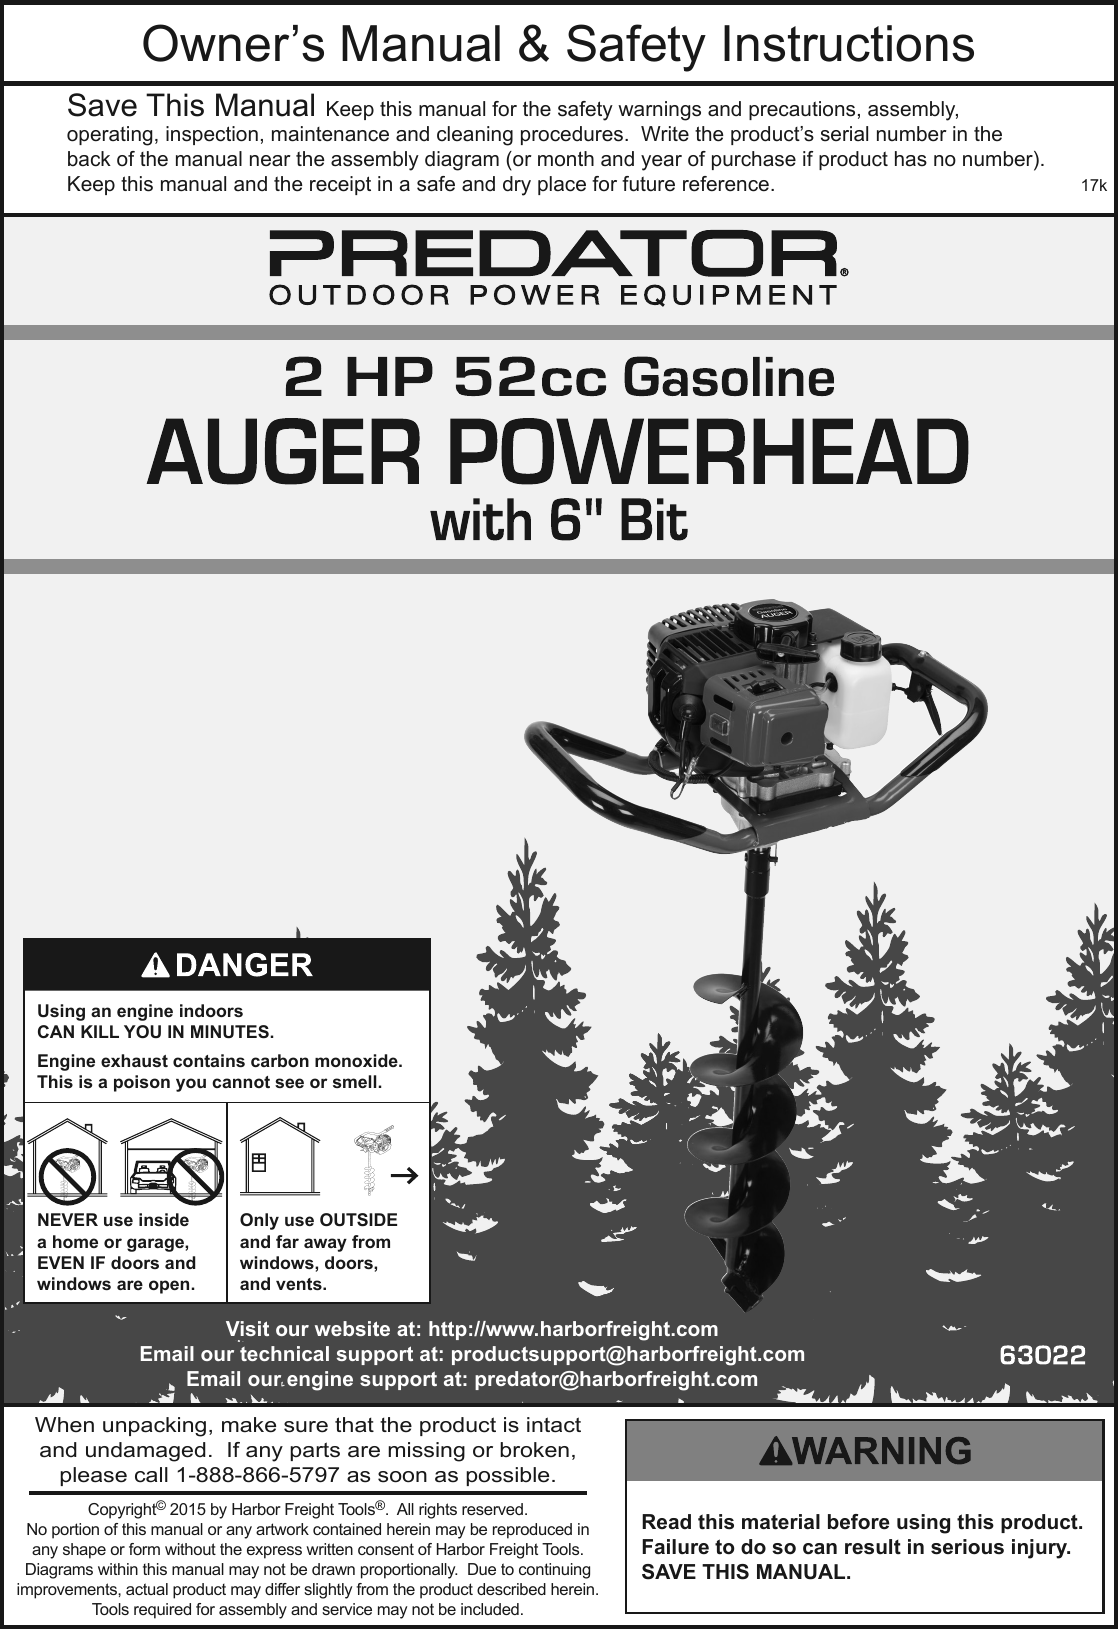 Manual For The 63022 Gas Powered Earth Auger